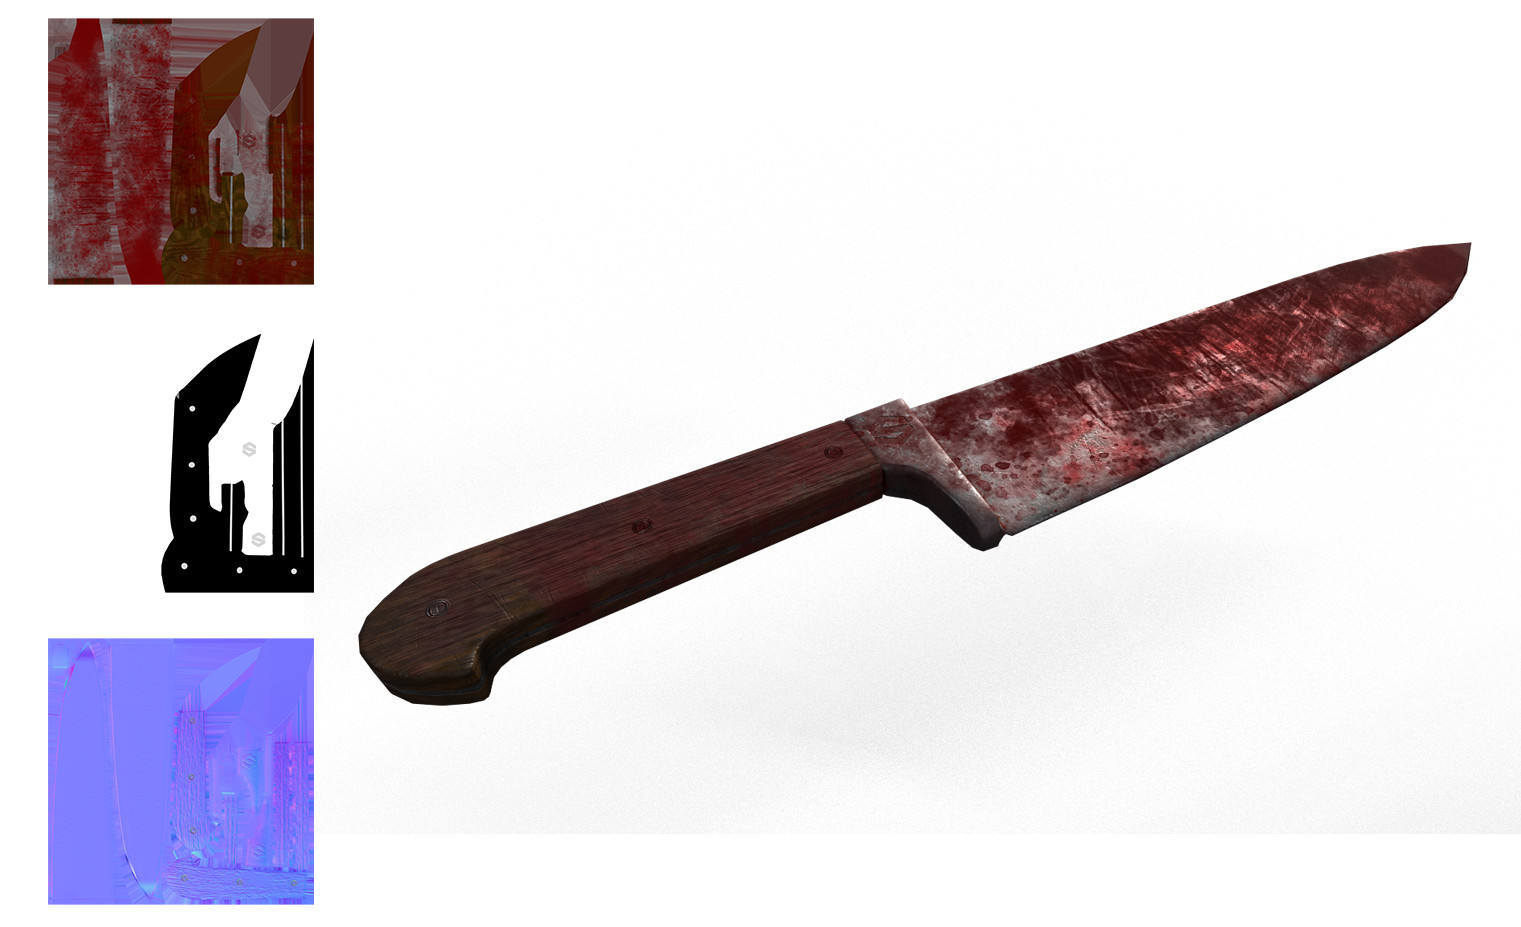 Blood soaked knife textured in Substance Painter with Unity texture maps.